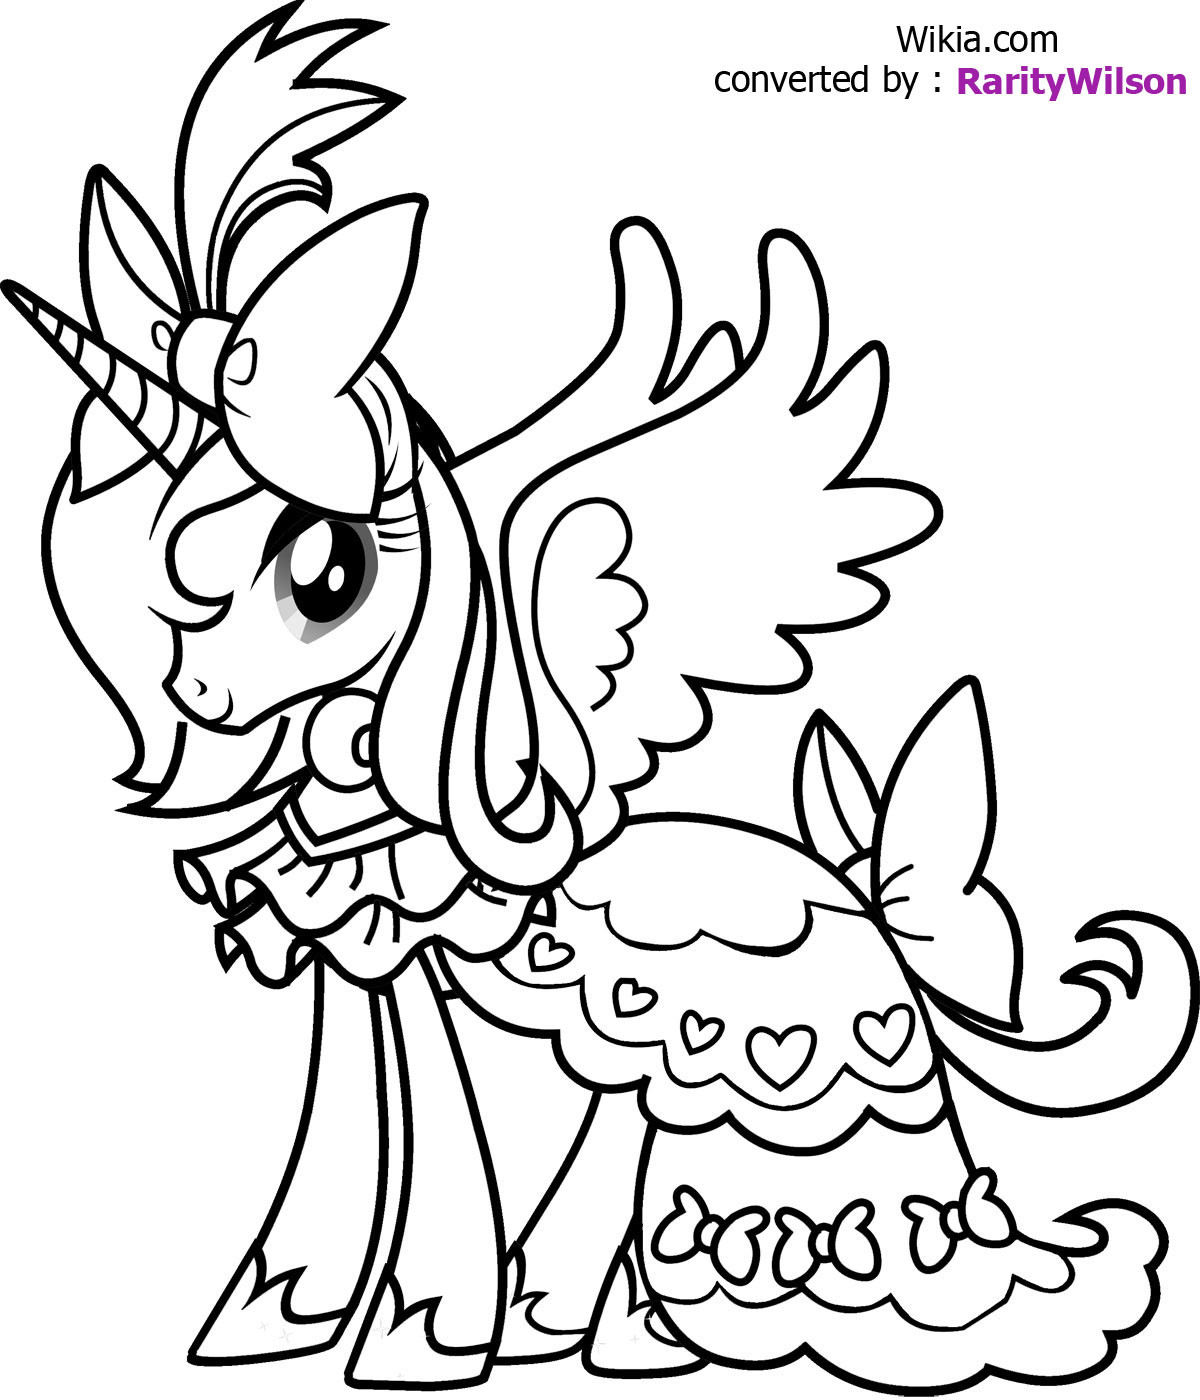 Unicorn Coloring Pages | Free download best Unicorn Coloring Pages ...